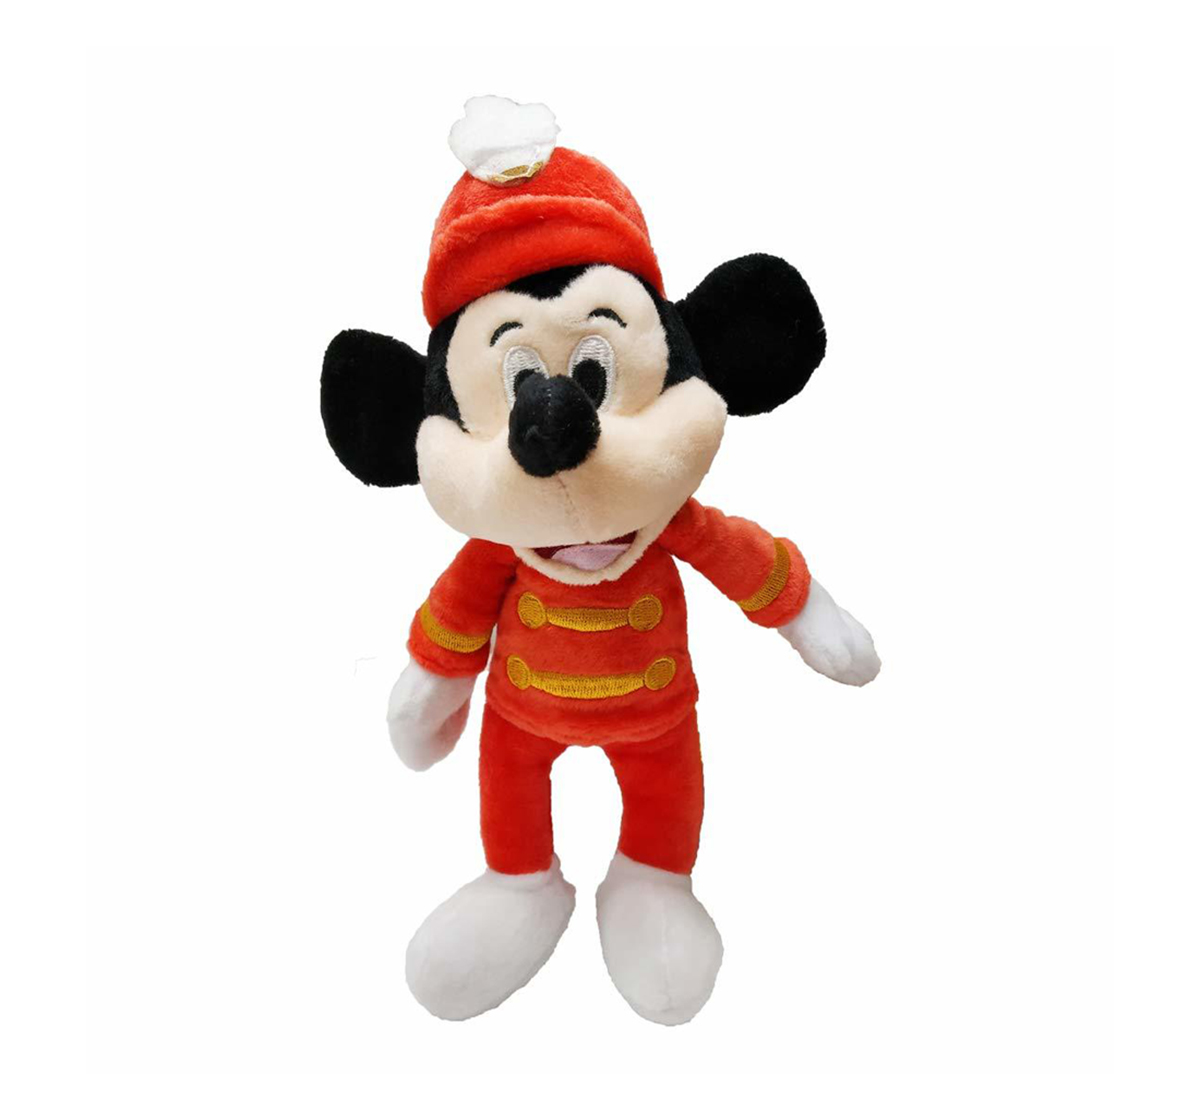 Disney | Disney Mouseketeers Mickey 15 Cm Soft Toy for Kids age 1Y+